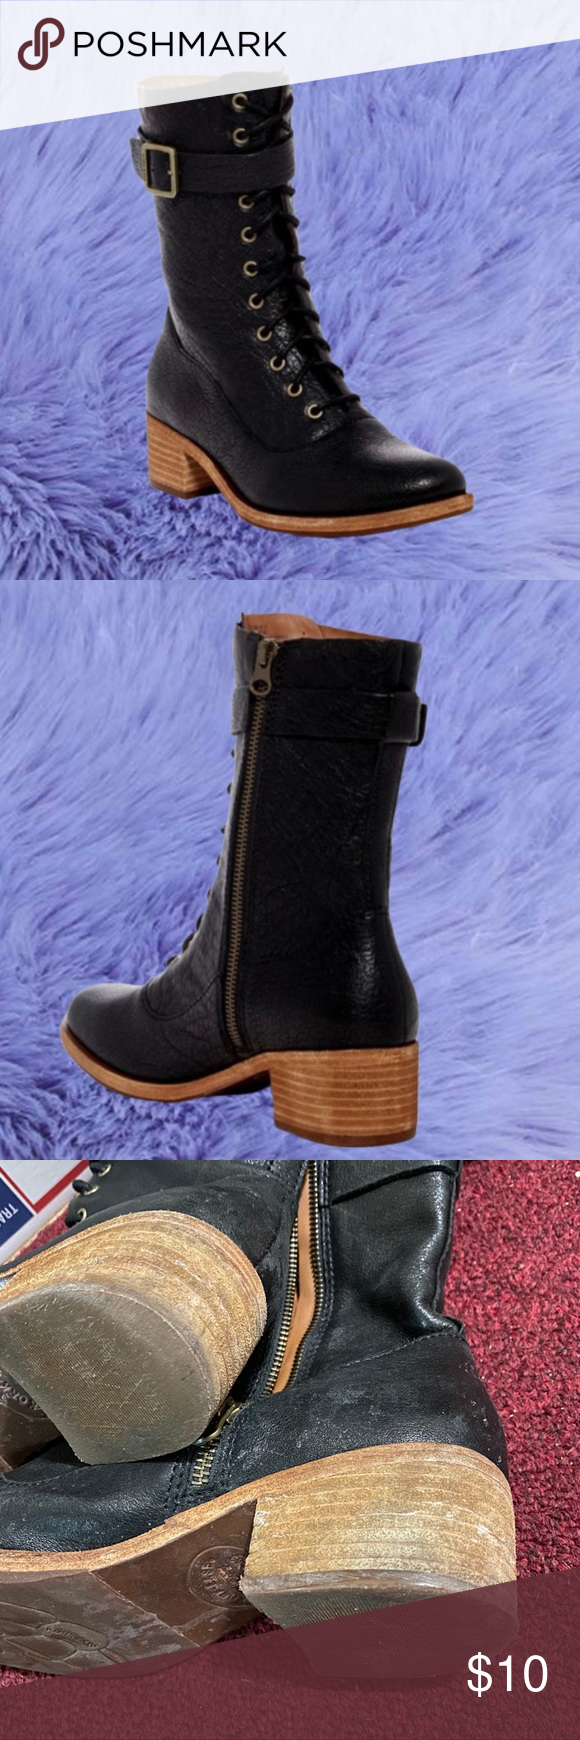 kork ease lace up boots